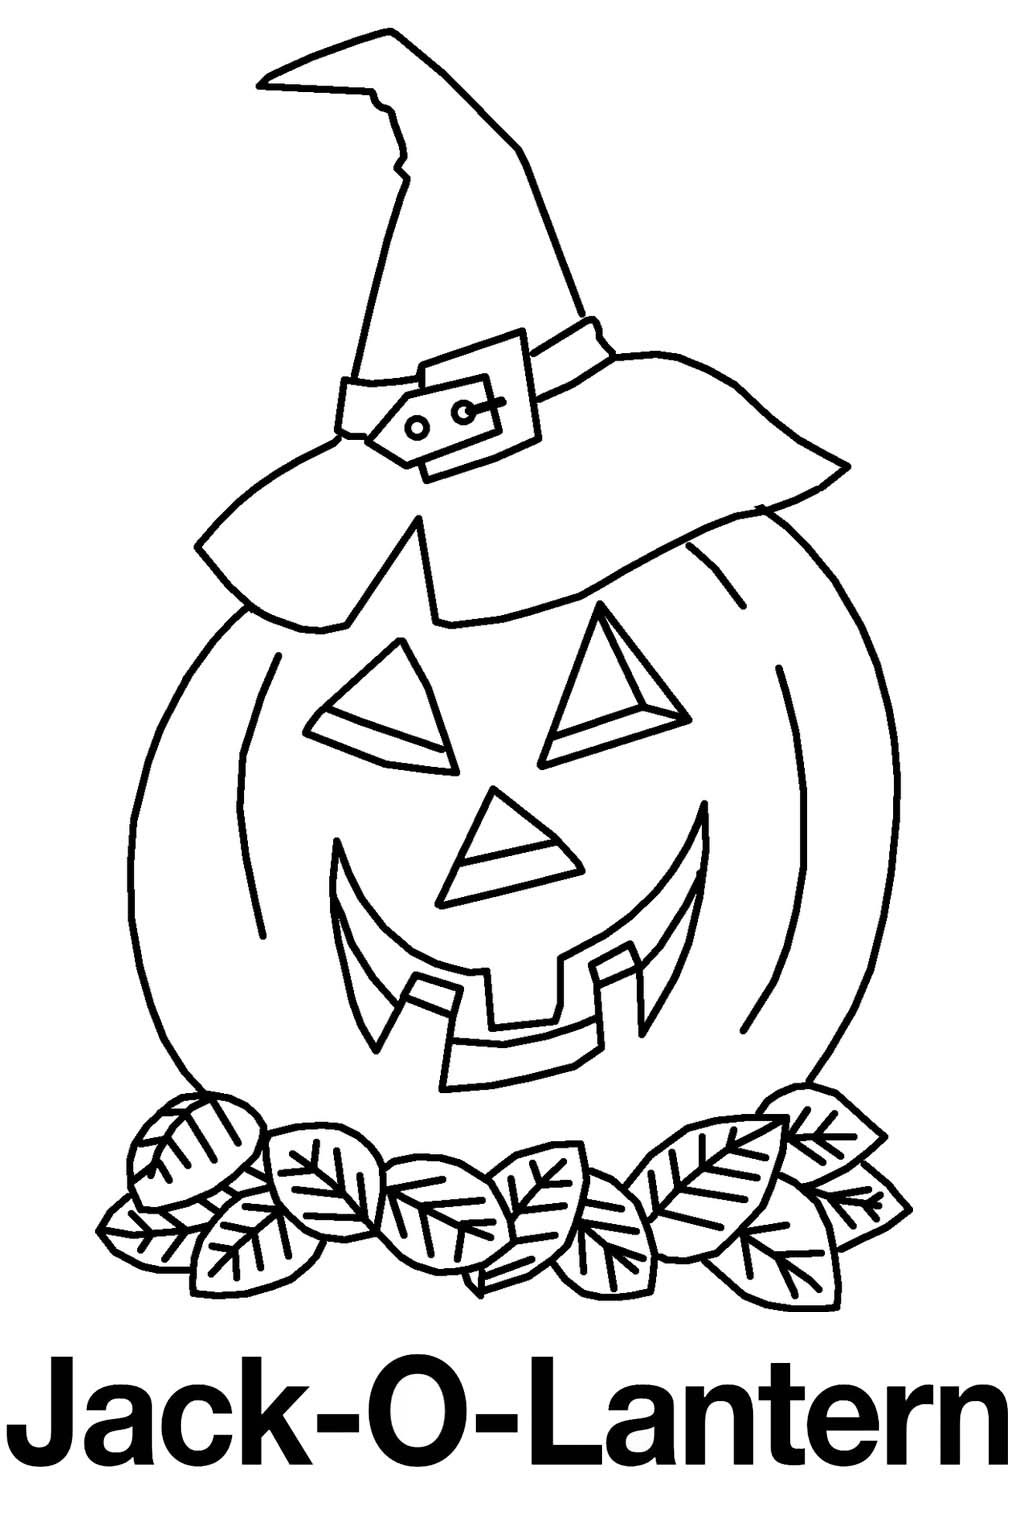 Evil Jack o lantern Coloring Pages